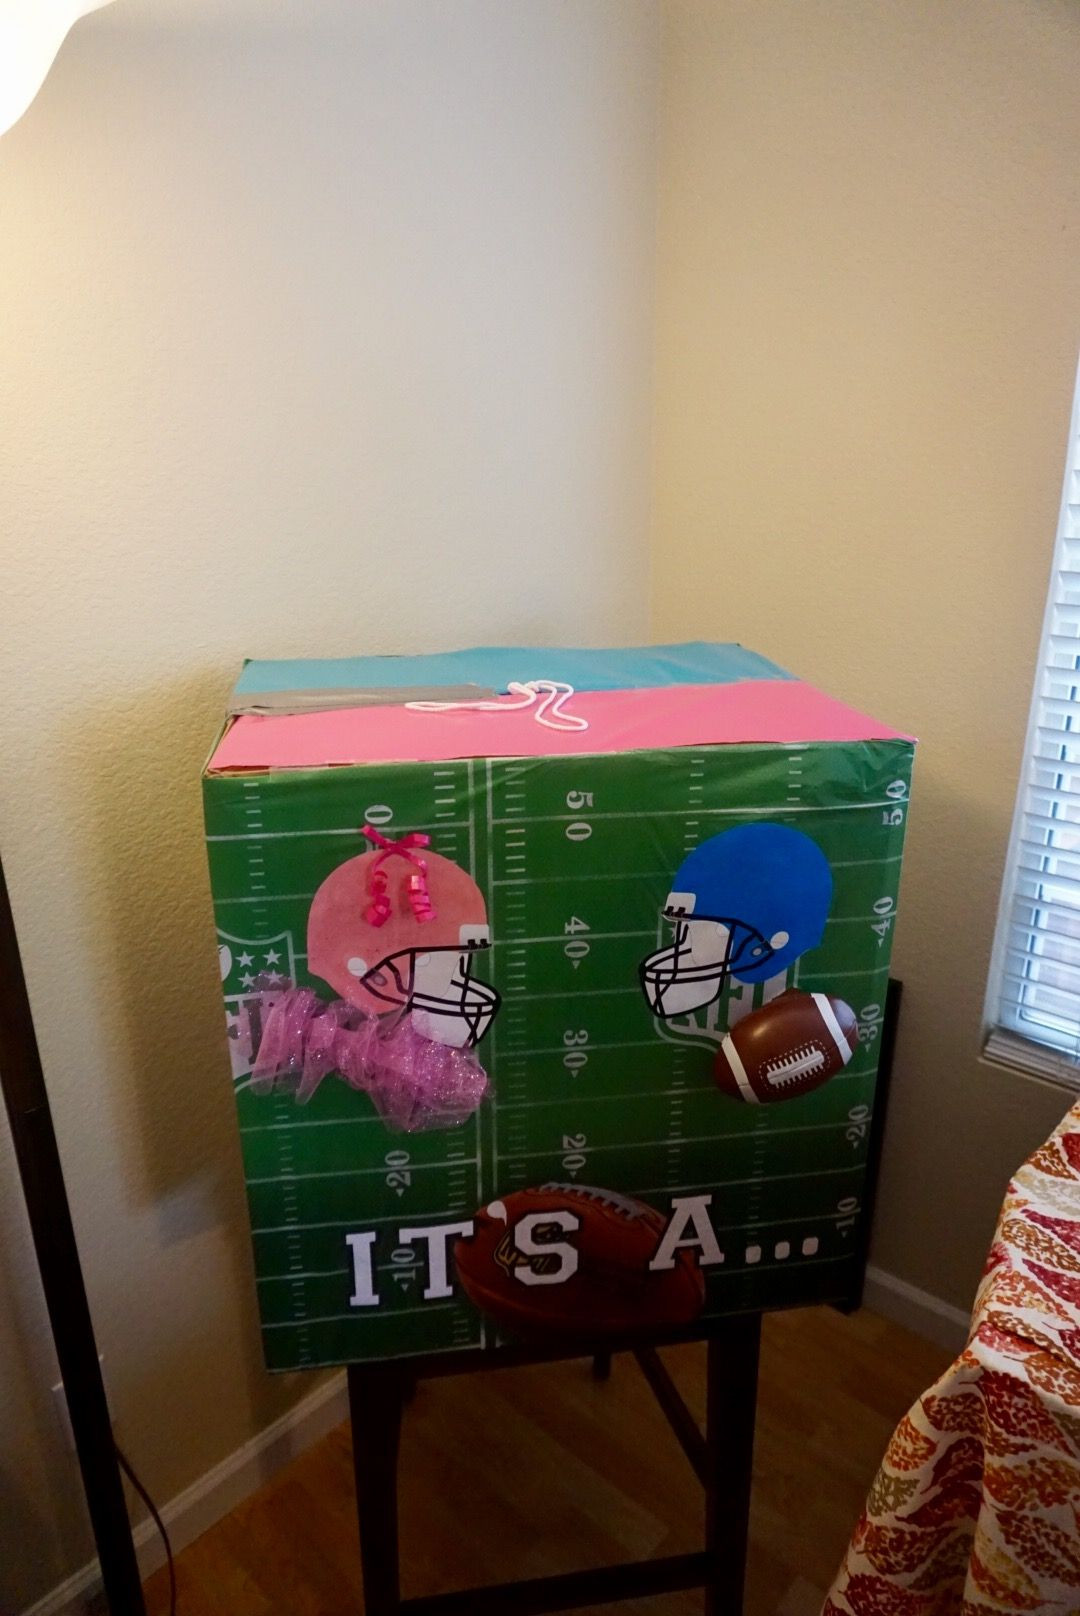 Football Themed Gender Reveal Party Ideas  Football themed gender reveal box